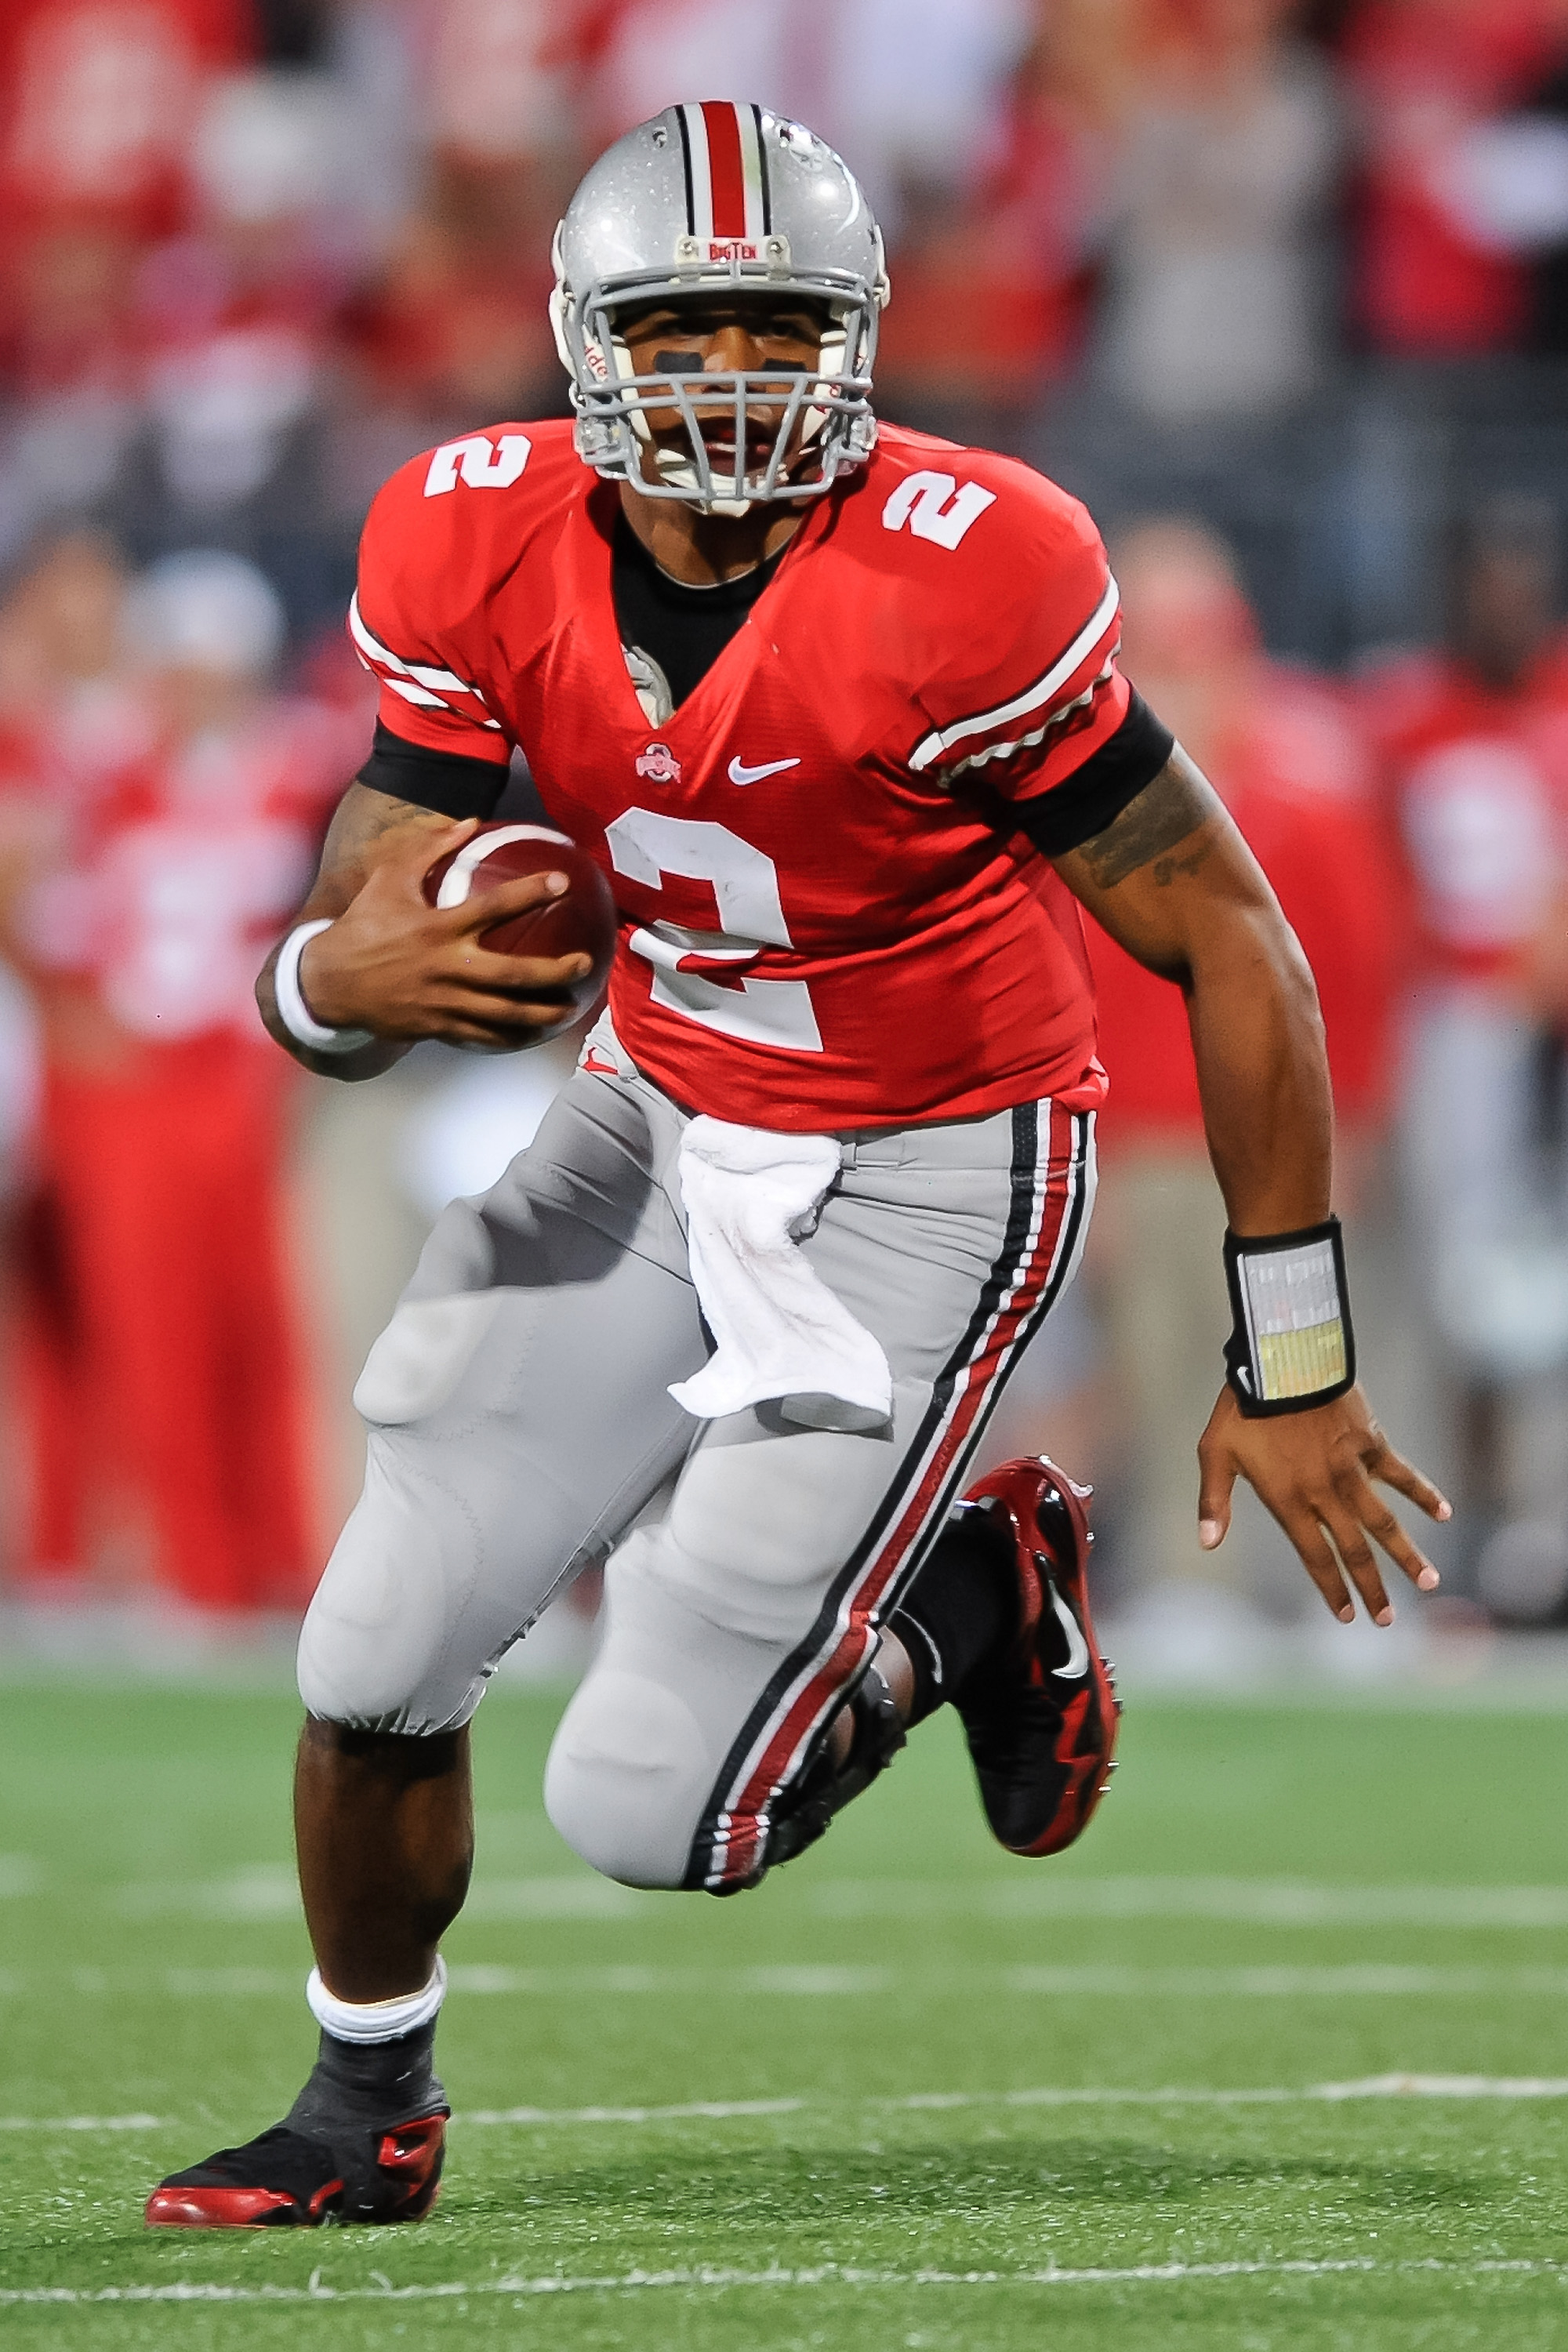 COLUMBUS, OH - NOVEMBER 13:  Quarterback Terrelle Pryor #2 of the Ohio State Buckeyes runs with the ball against the Penn State Nittany Lions at Ohio Stadium on November 13, 2010 in Columbus, Ohio.  (Photo by Jamie Sabau/Getty Images)